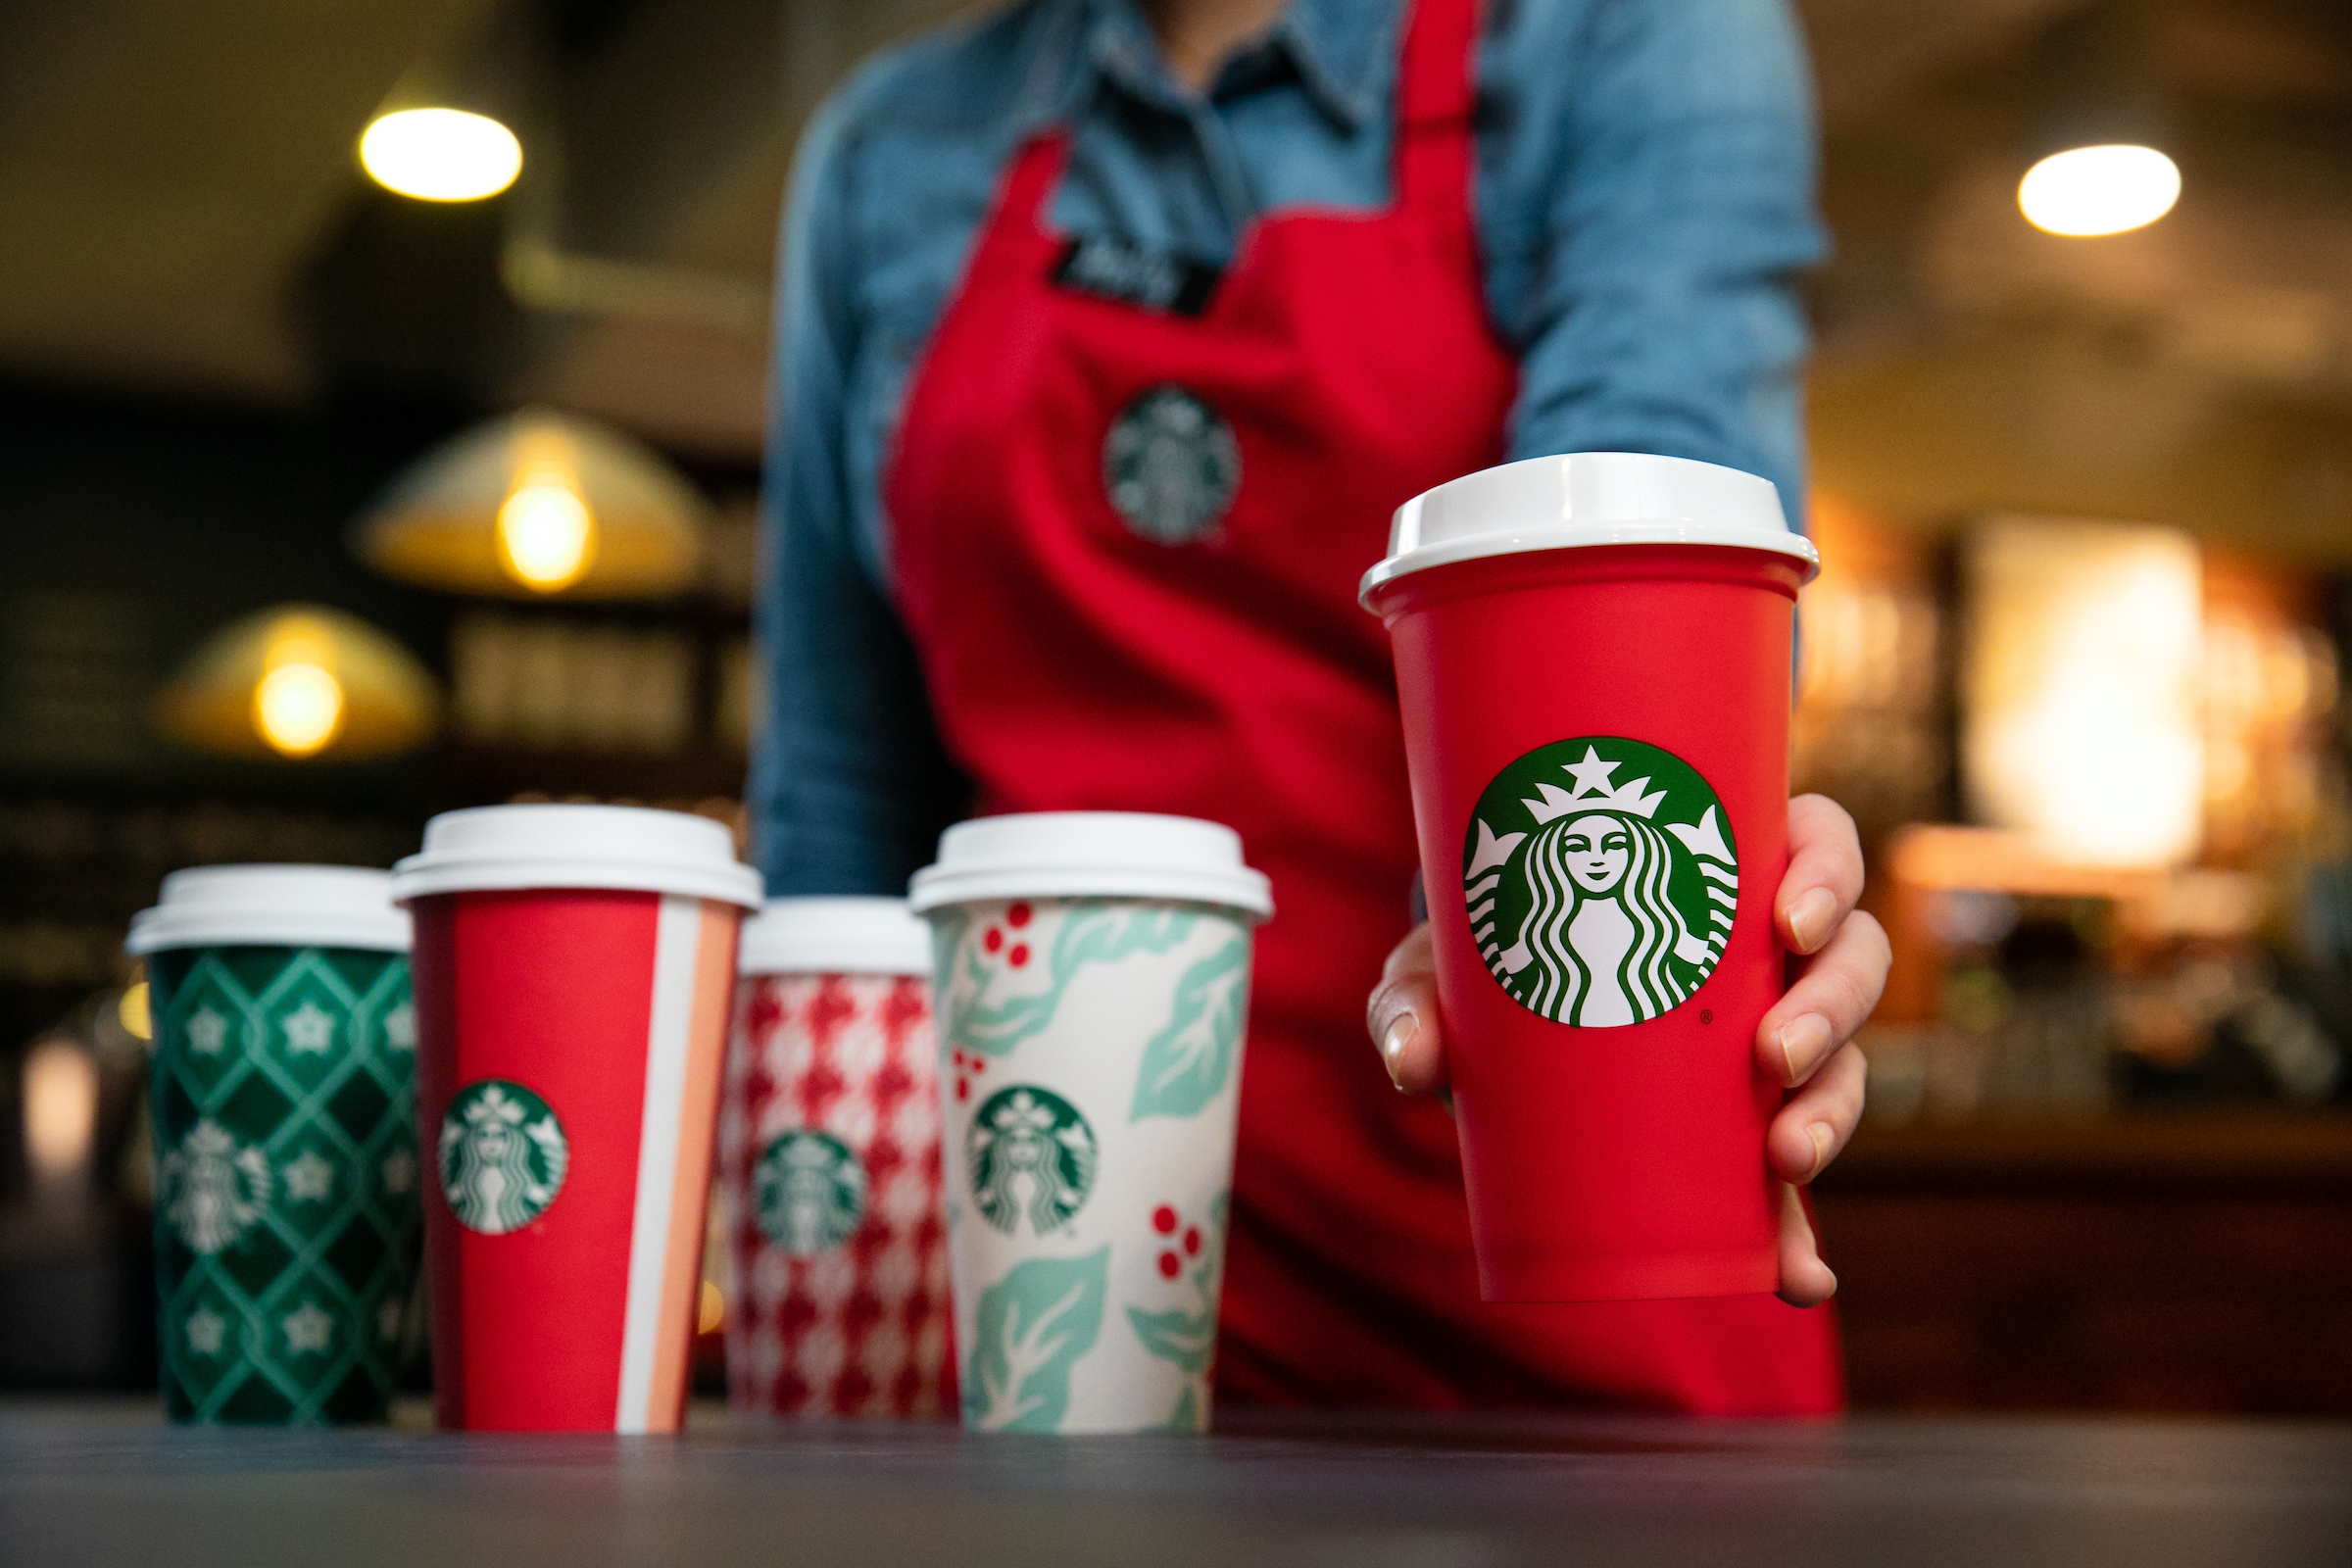 starbucks christmas cups do the new designs embrace the holiday the washington post - Starbuck Christmas Cups